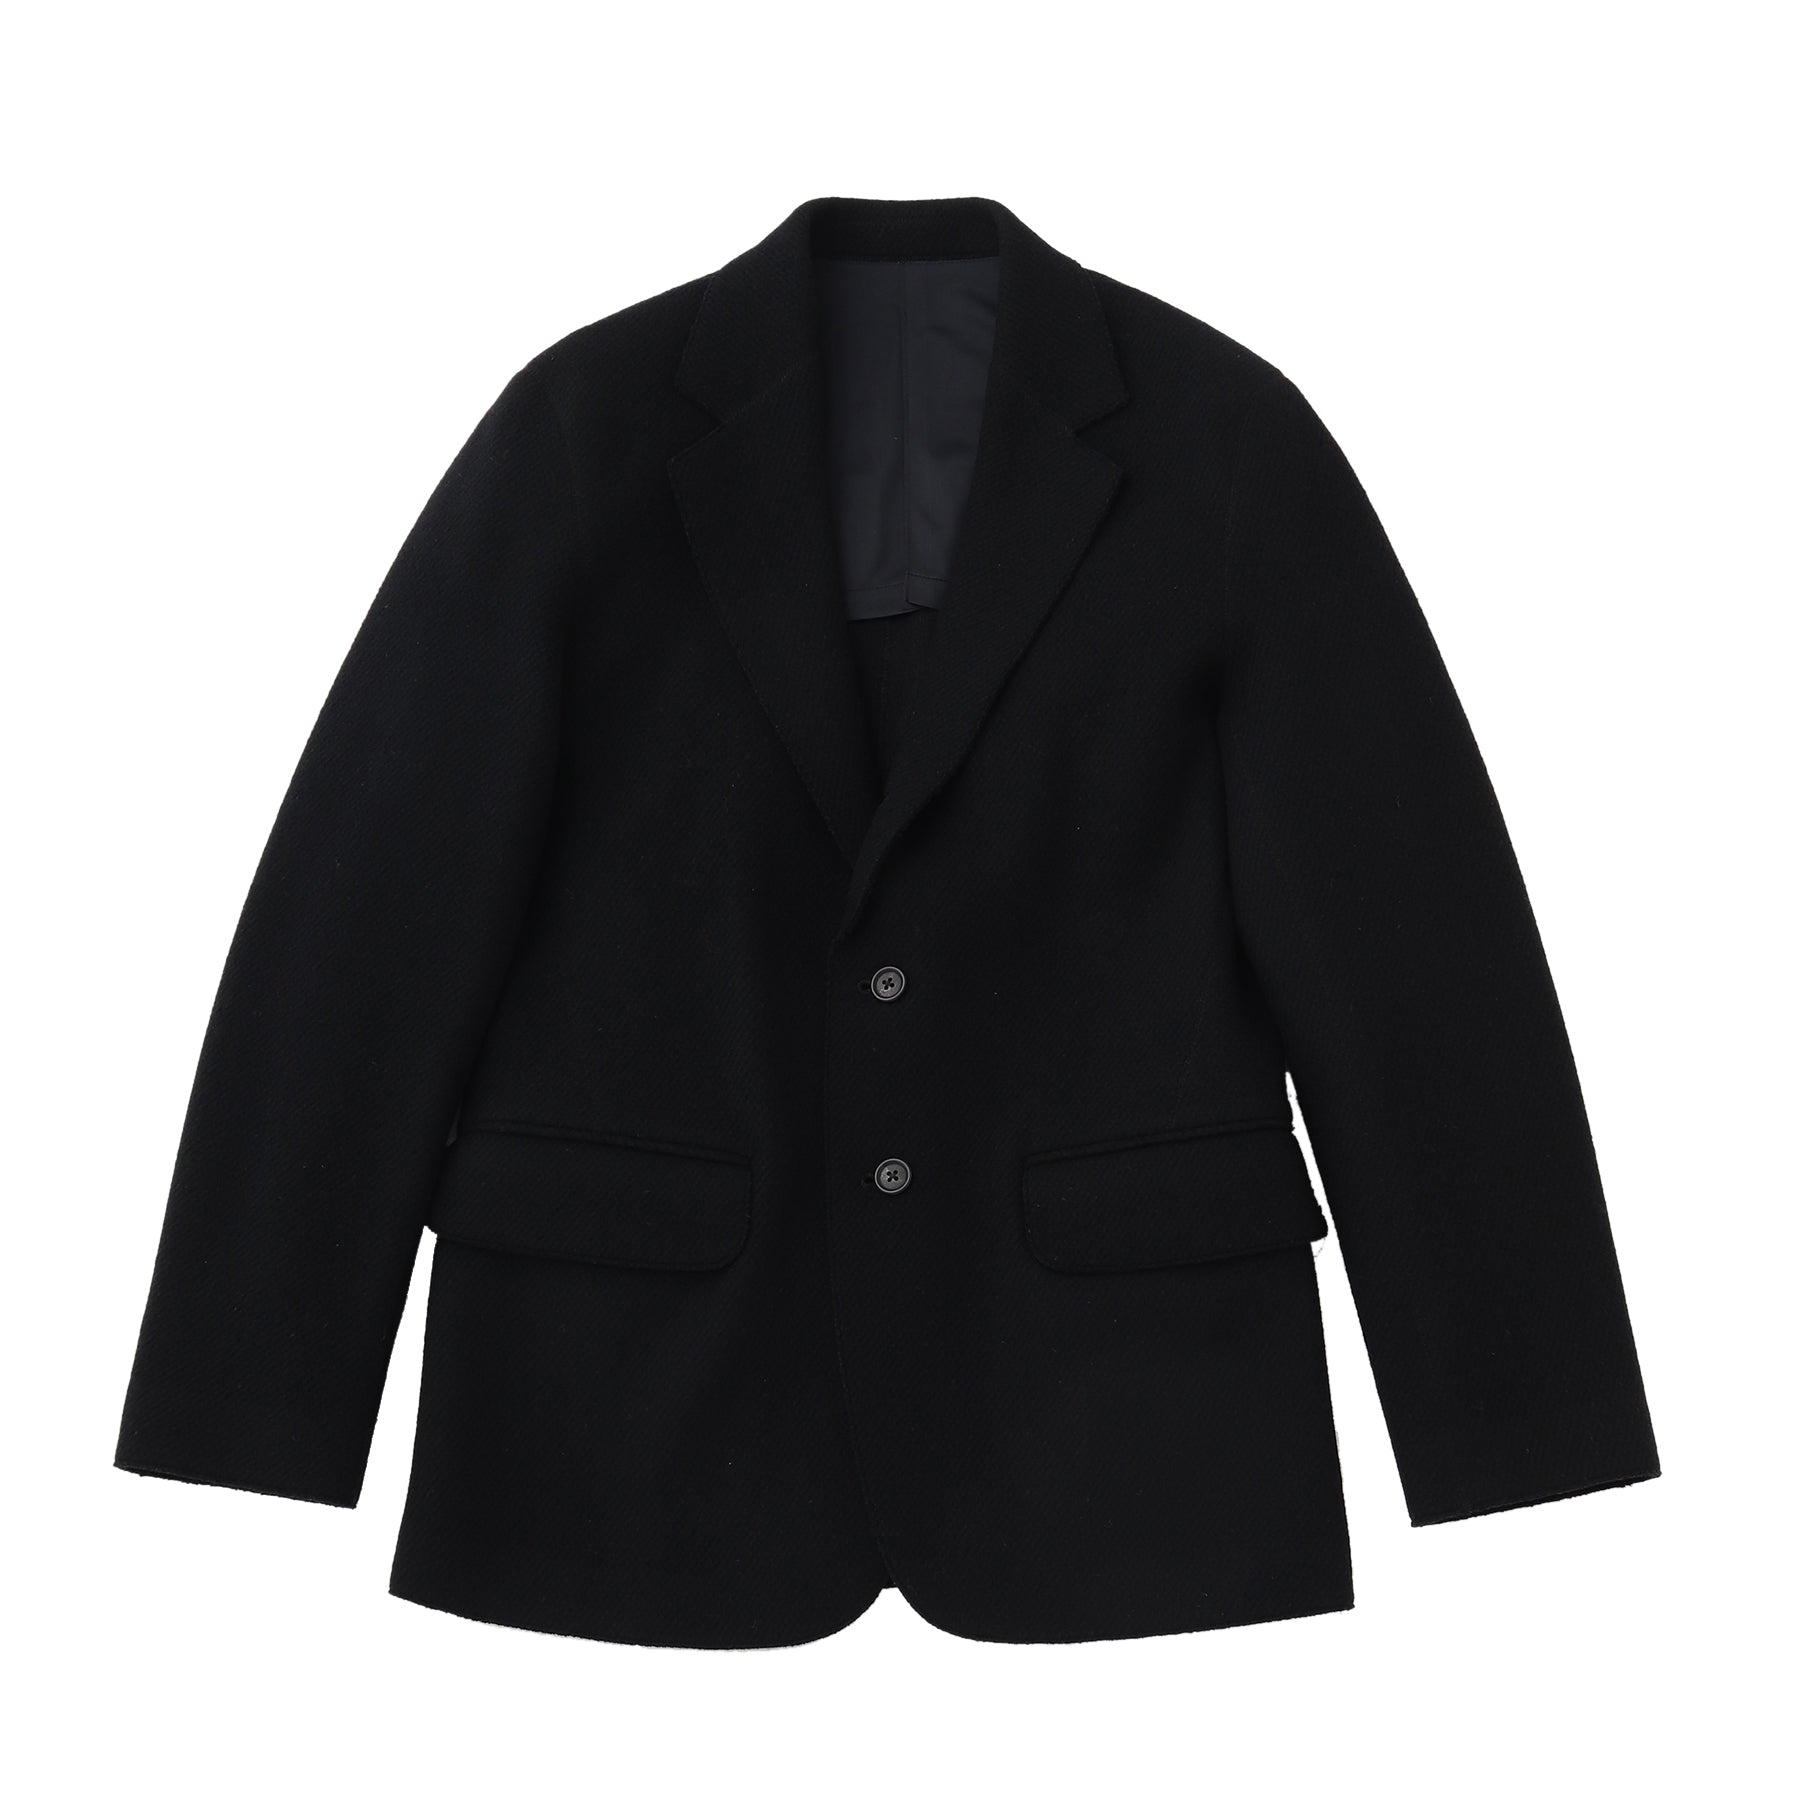 TPS_Mossa Jacket<br>Col.Black